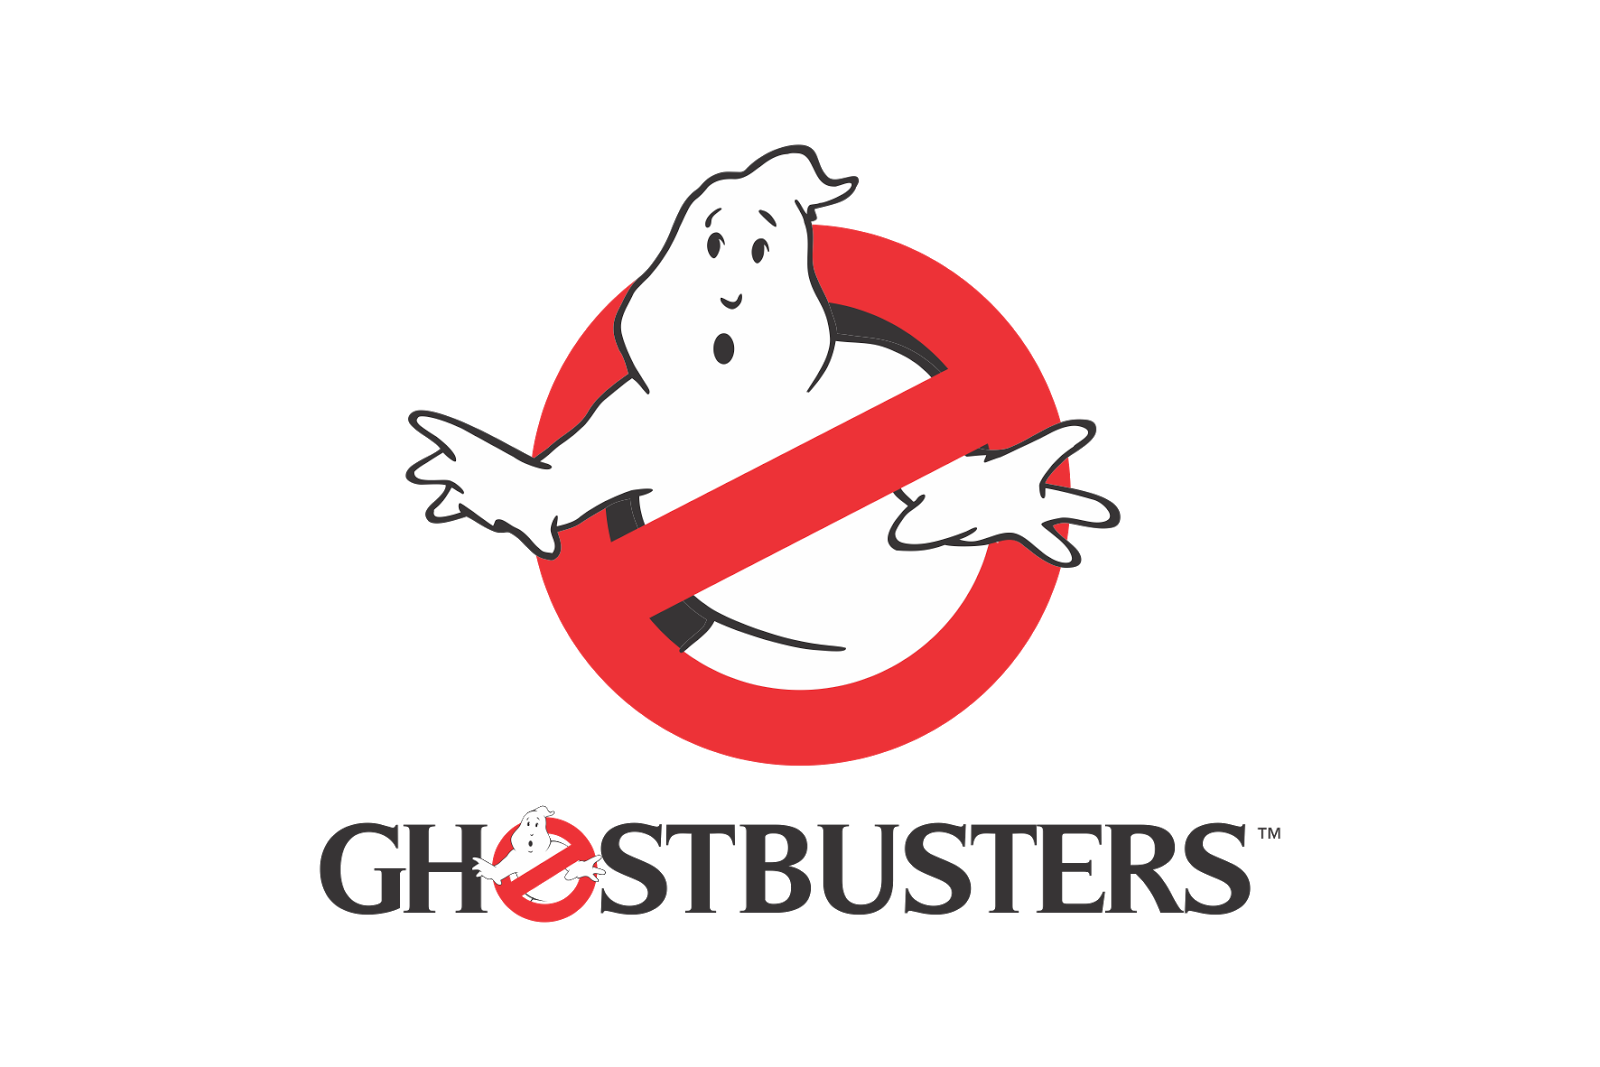 Ghostbusters logo png. Image lego dimensions wiki